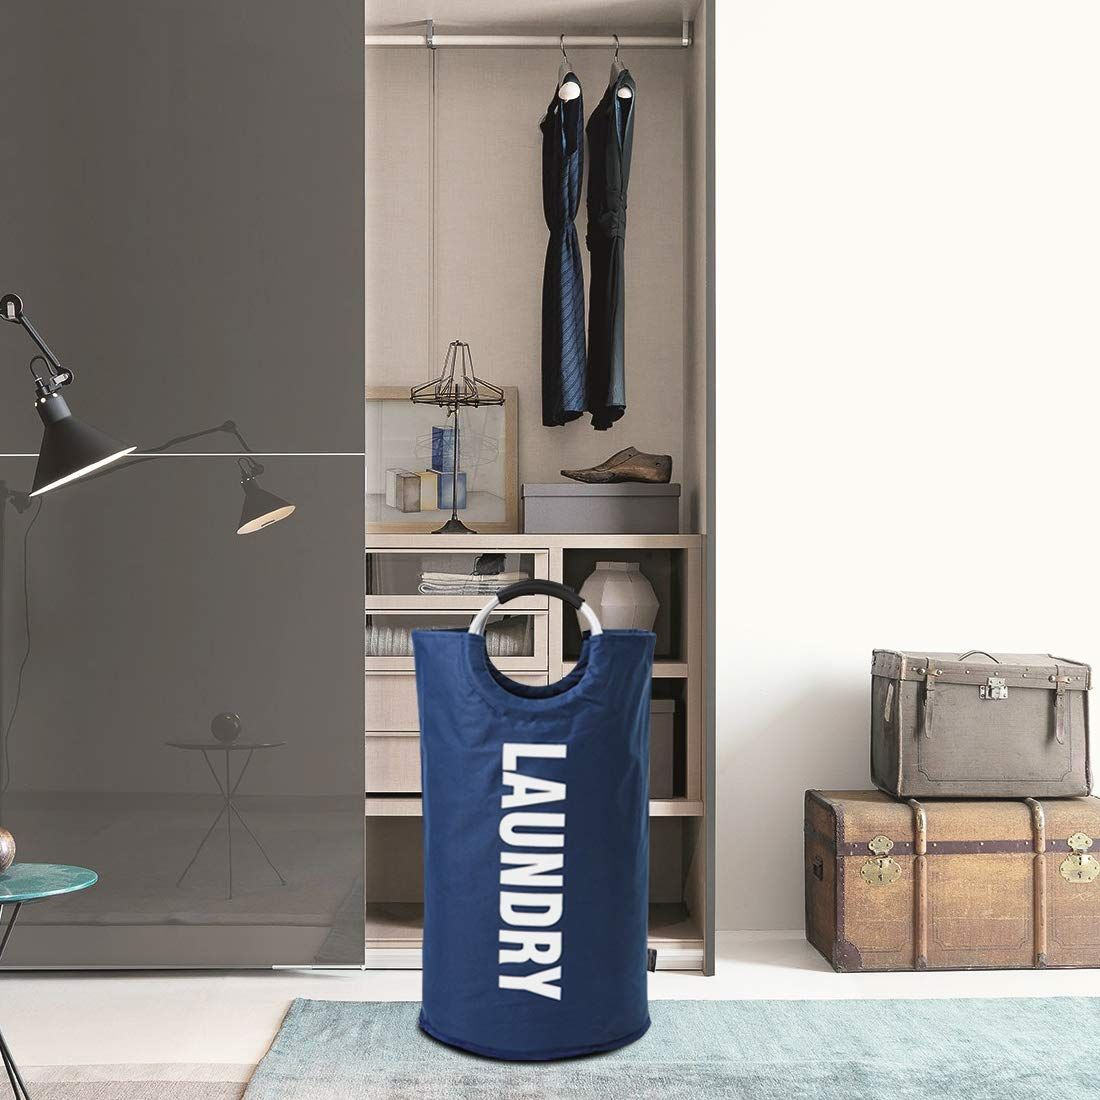 Free Door Hooks Two Compartments Tested to be Strong and Durable Open Top Design to Hold More Laundry Than Other Type Bags Space Saving Lights and Darks Hanging Laundry Hamper Bag